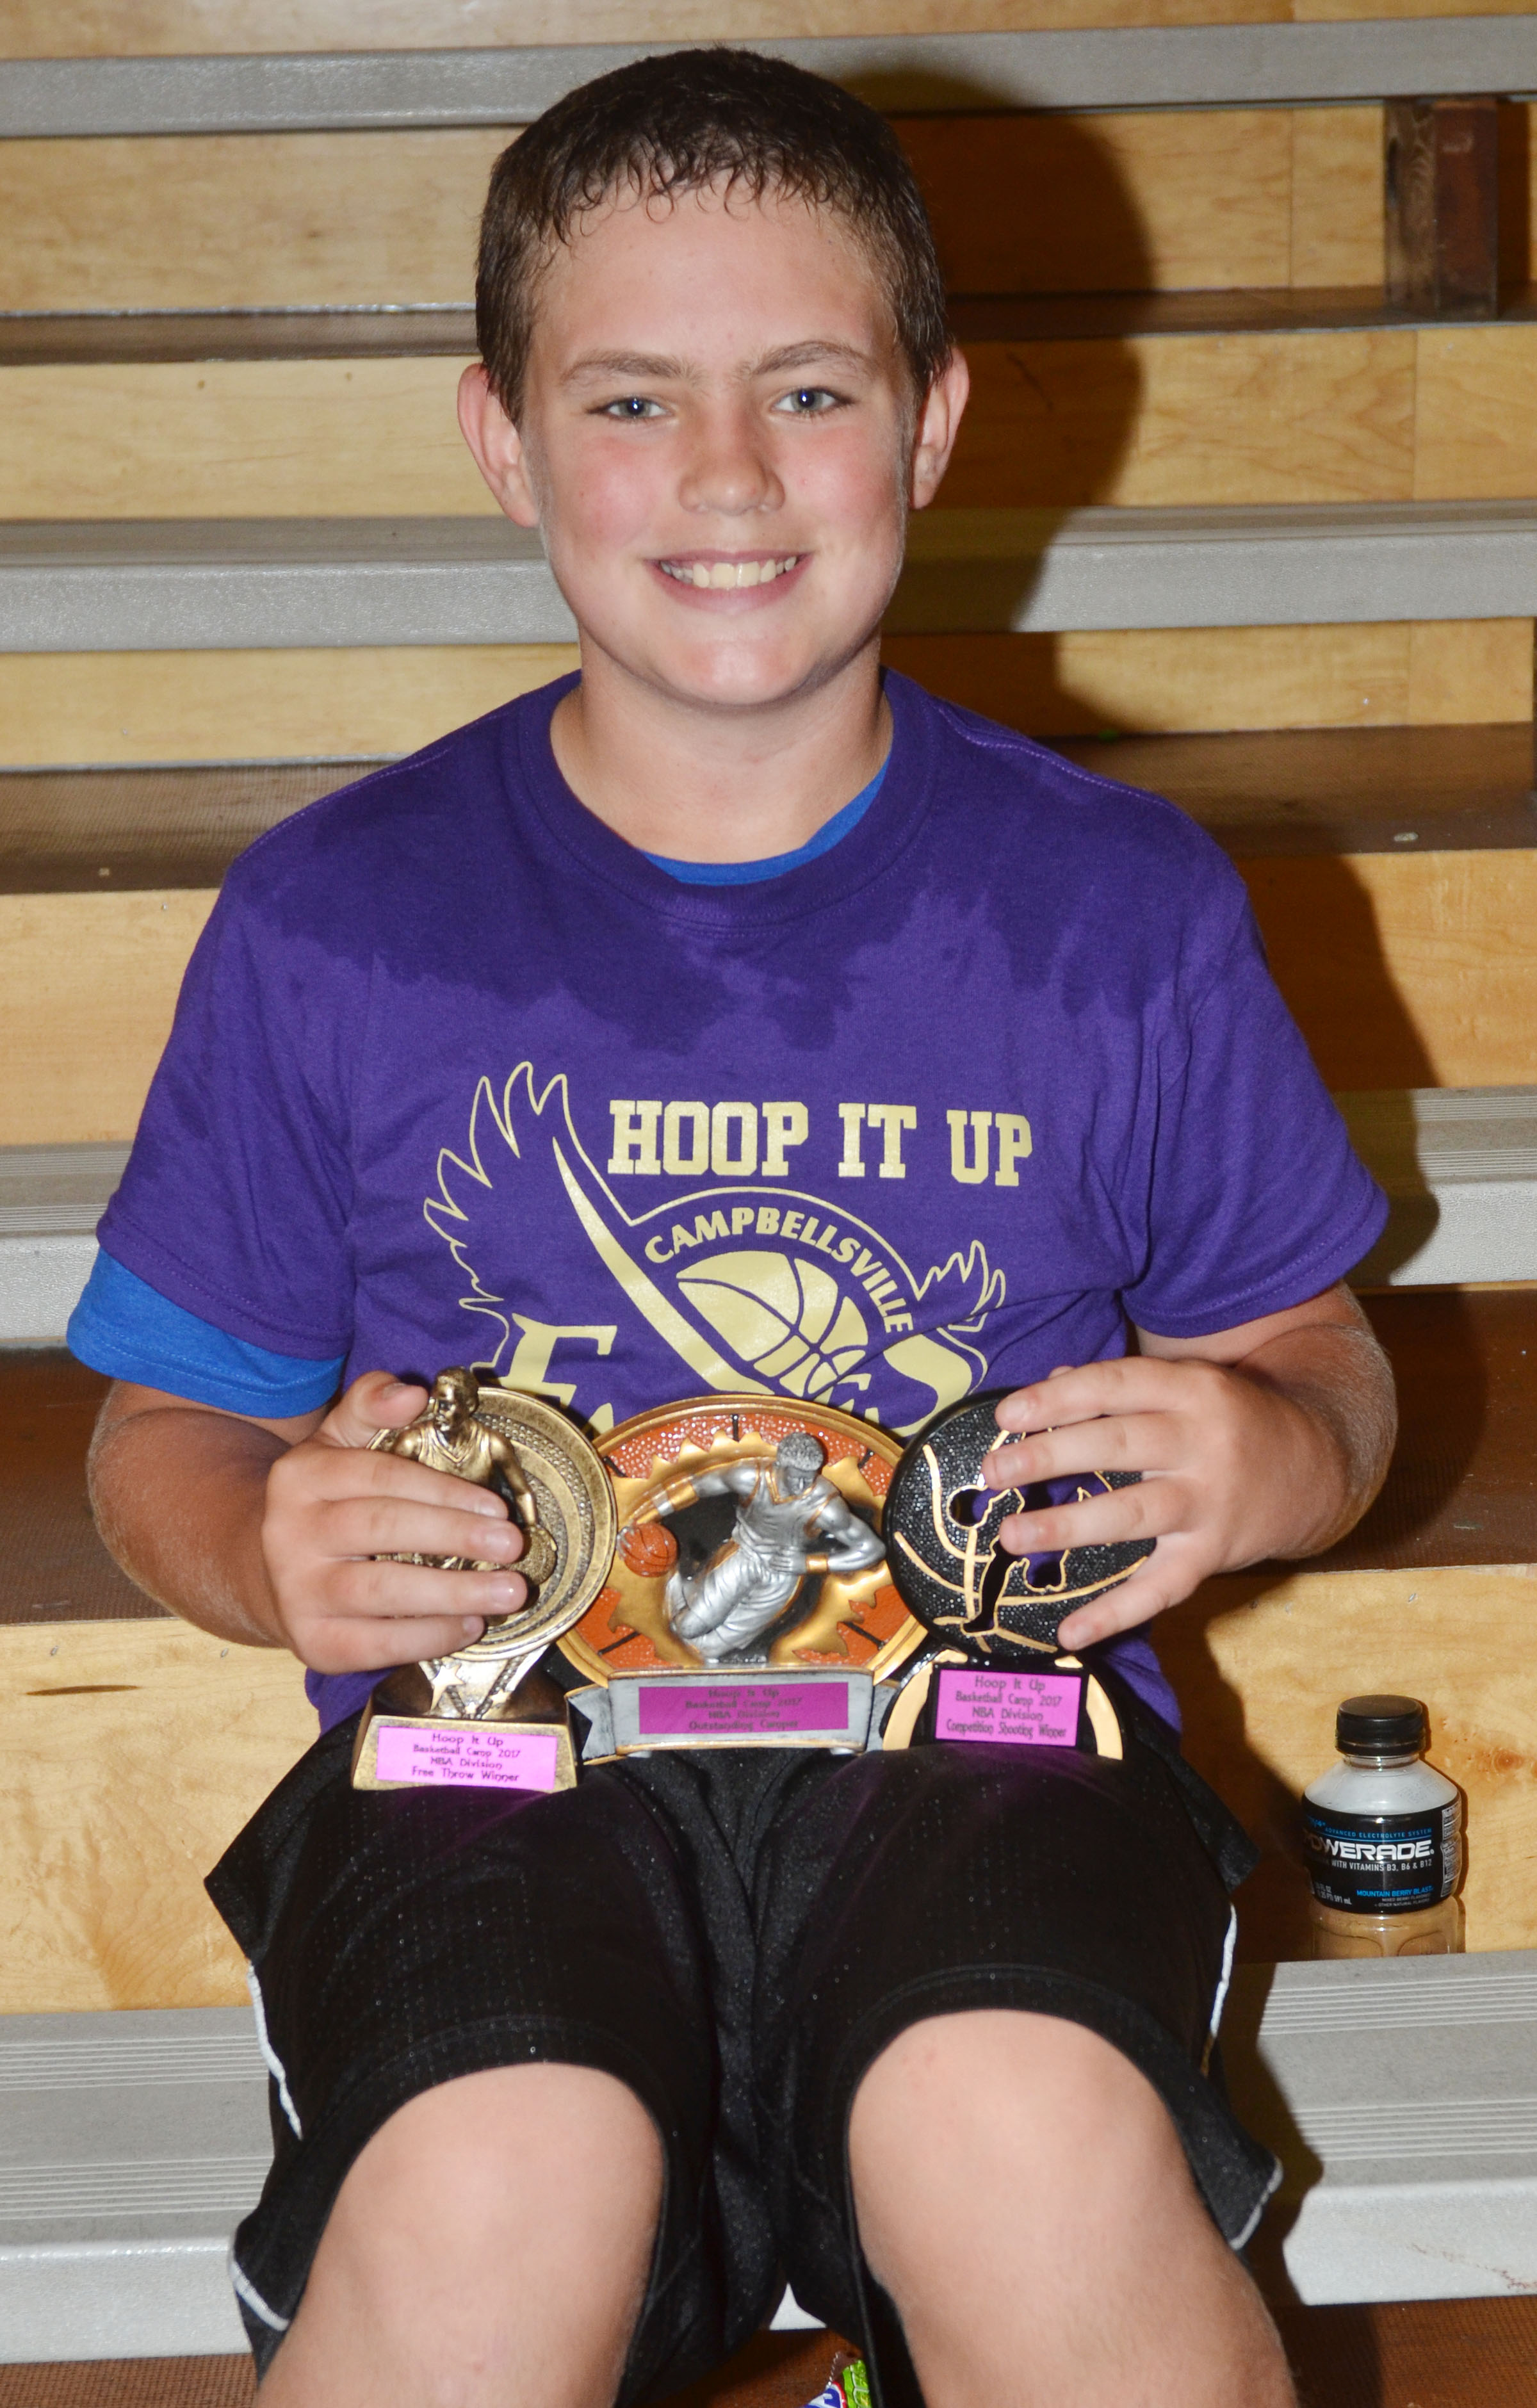 Landon Colvin won camp awards in the NBA division for free throws, competition shooting and outstanding camper.